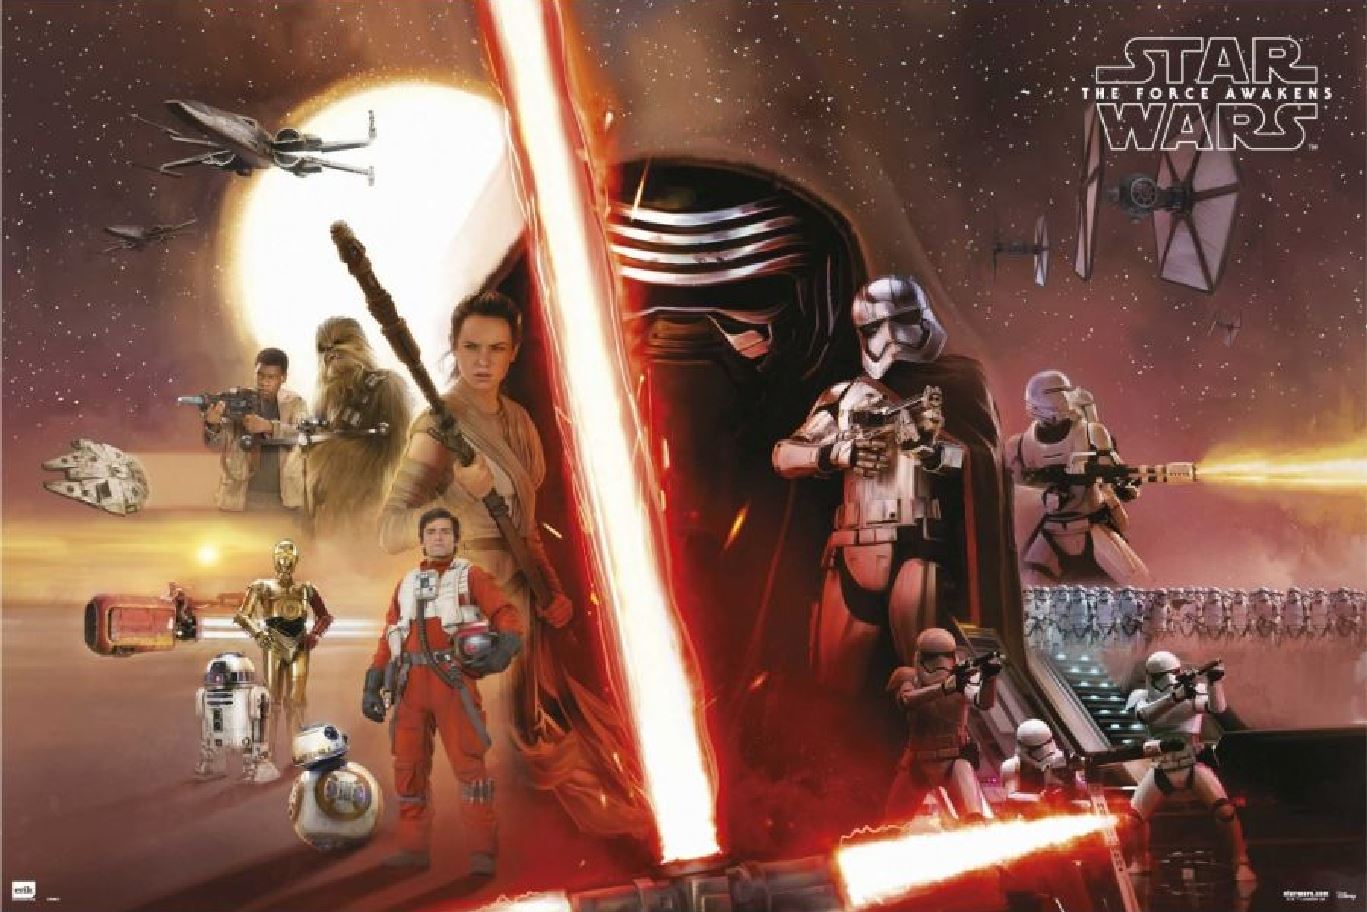 The Force Awakens poster - Kylo Ren, Rey and Captain Phasma